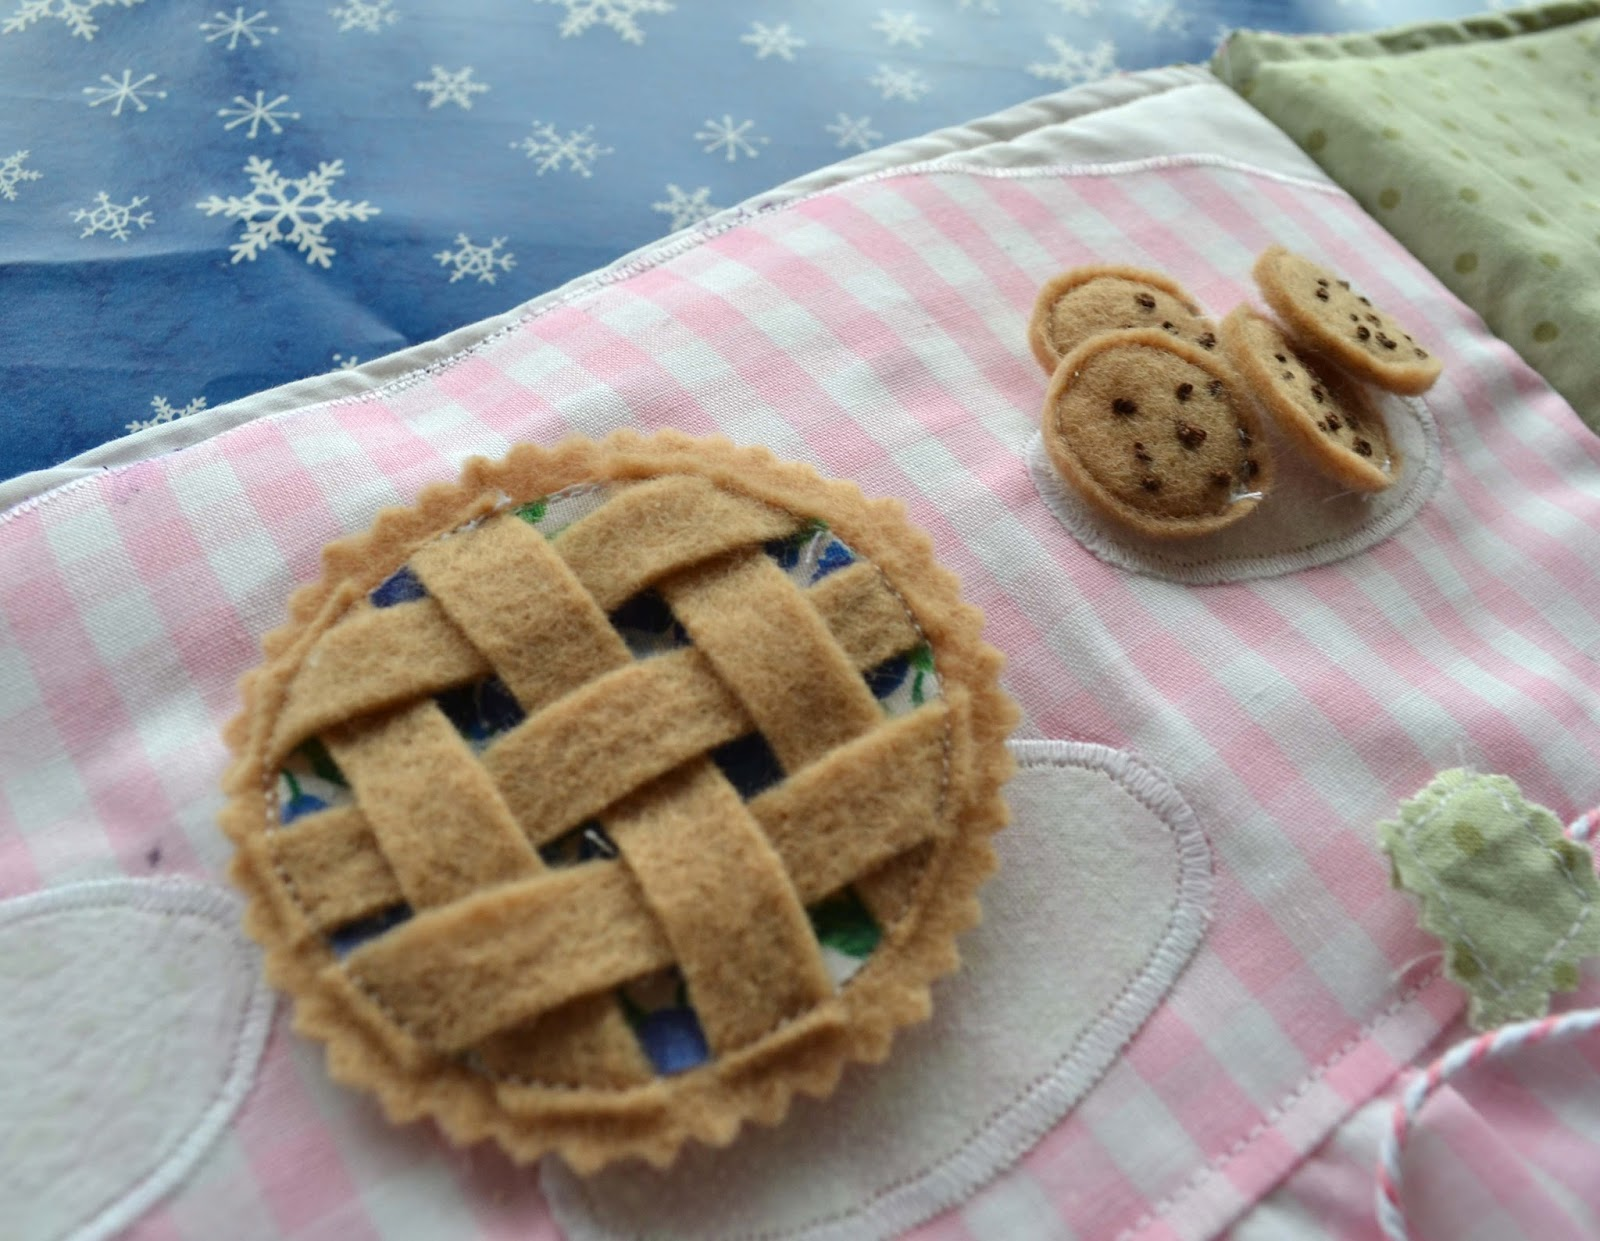 miniature felt pie and cookies